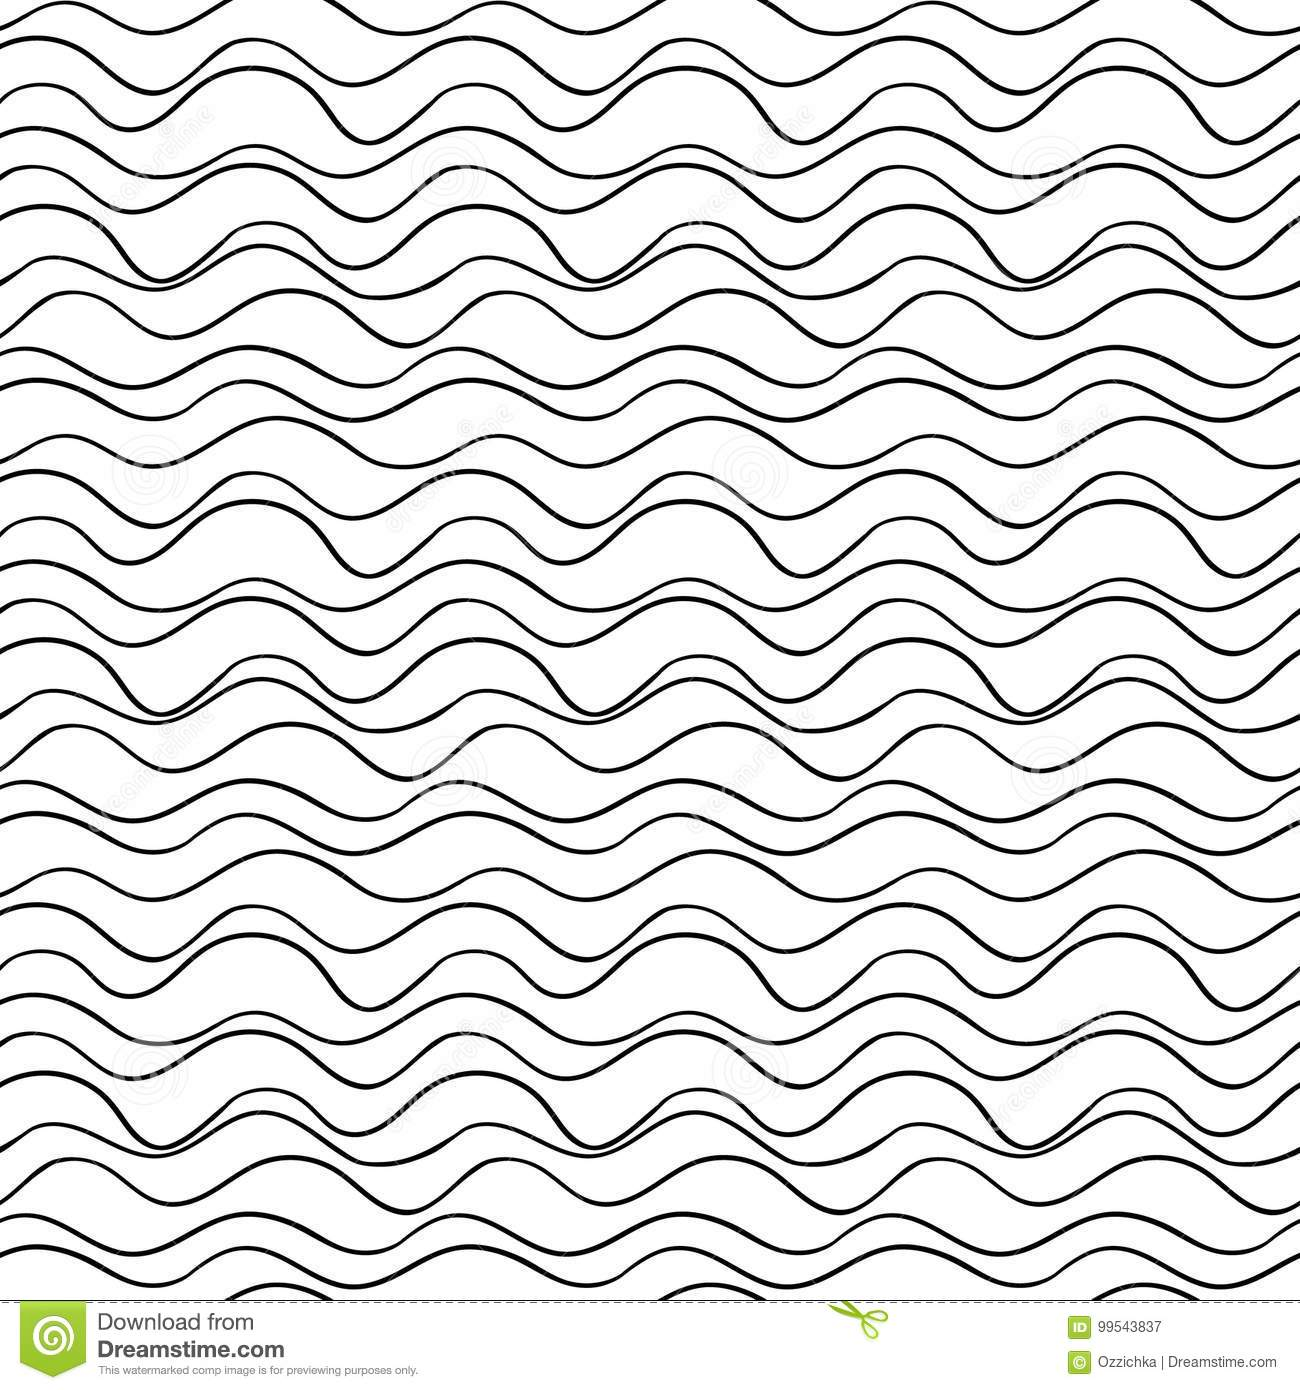 Line Texture Vector : Vector seamless wavy line pattern graphic texture hand